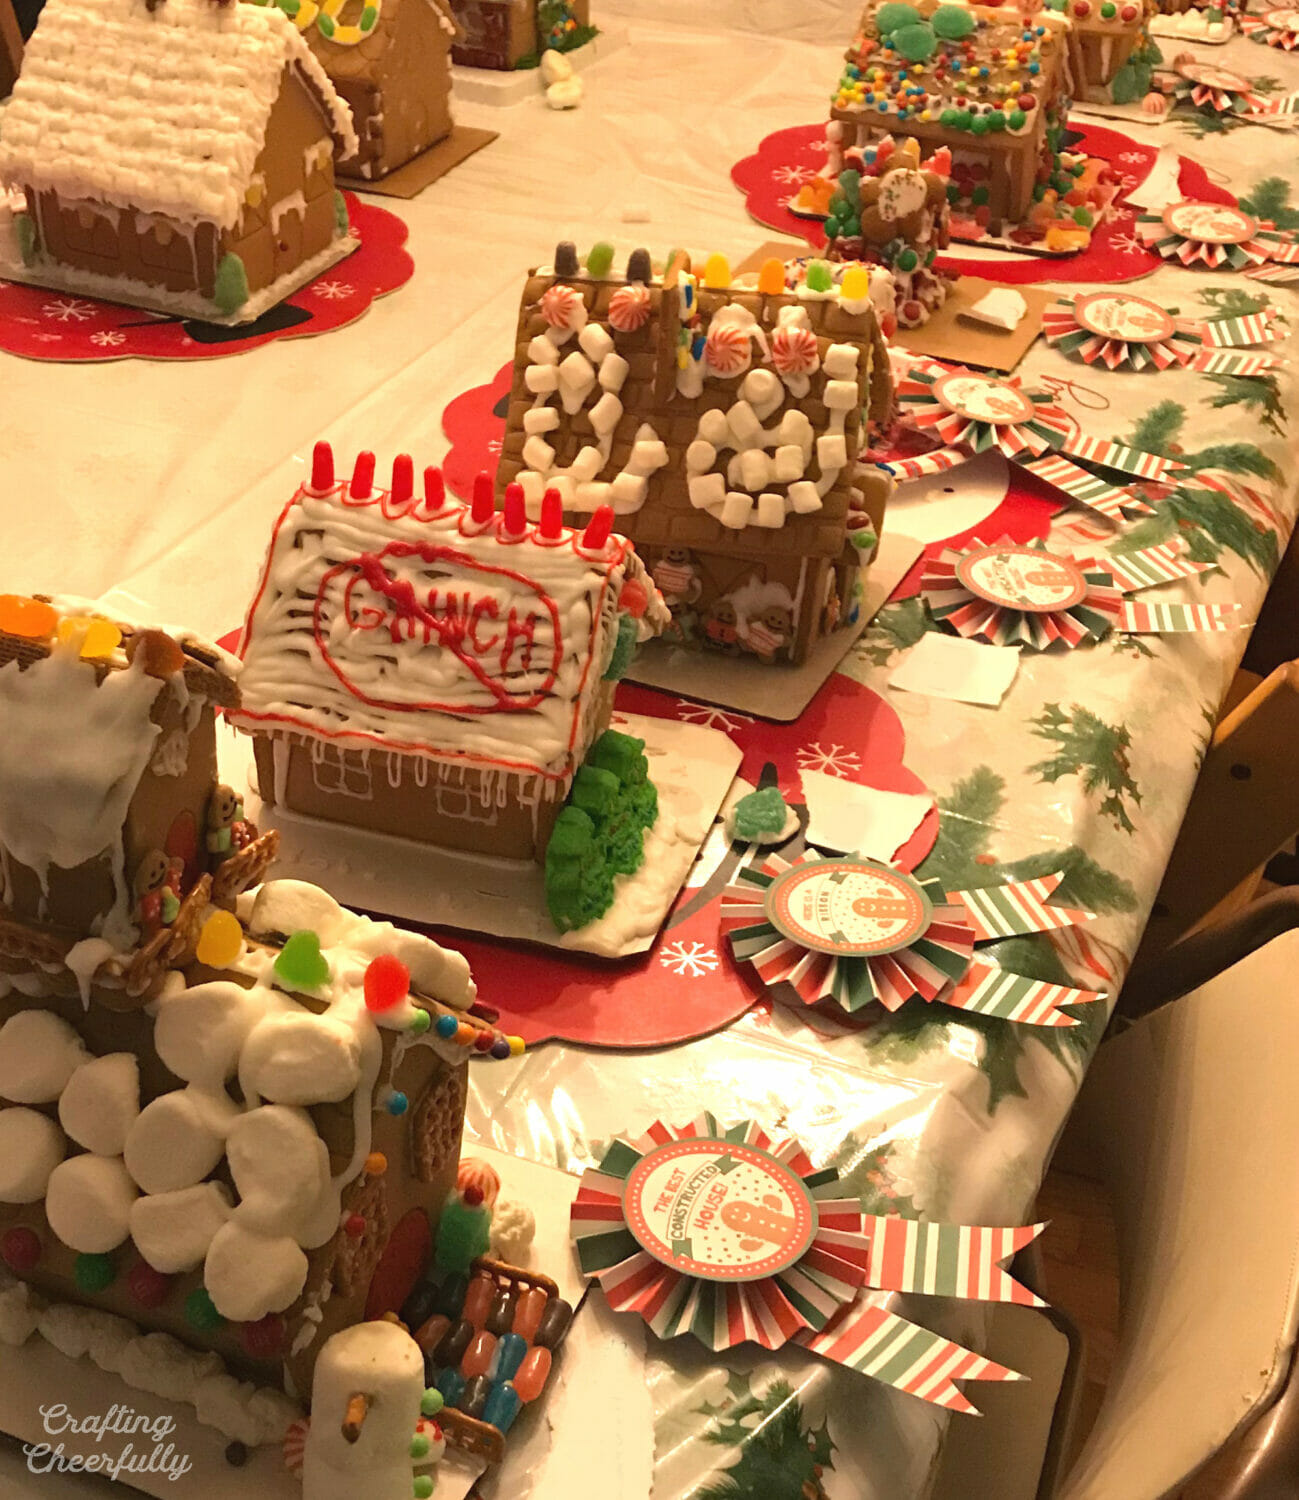 Gingerbread houses with award ribbons.